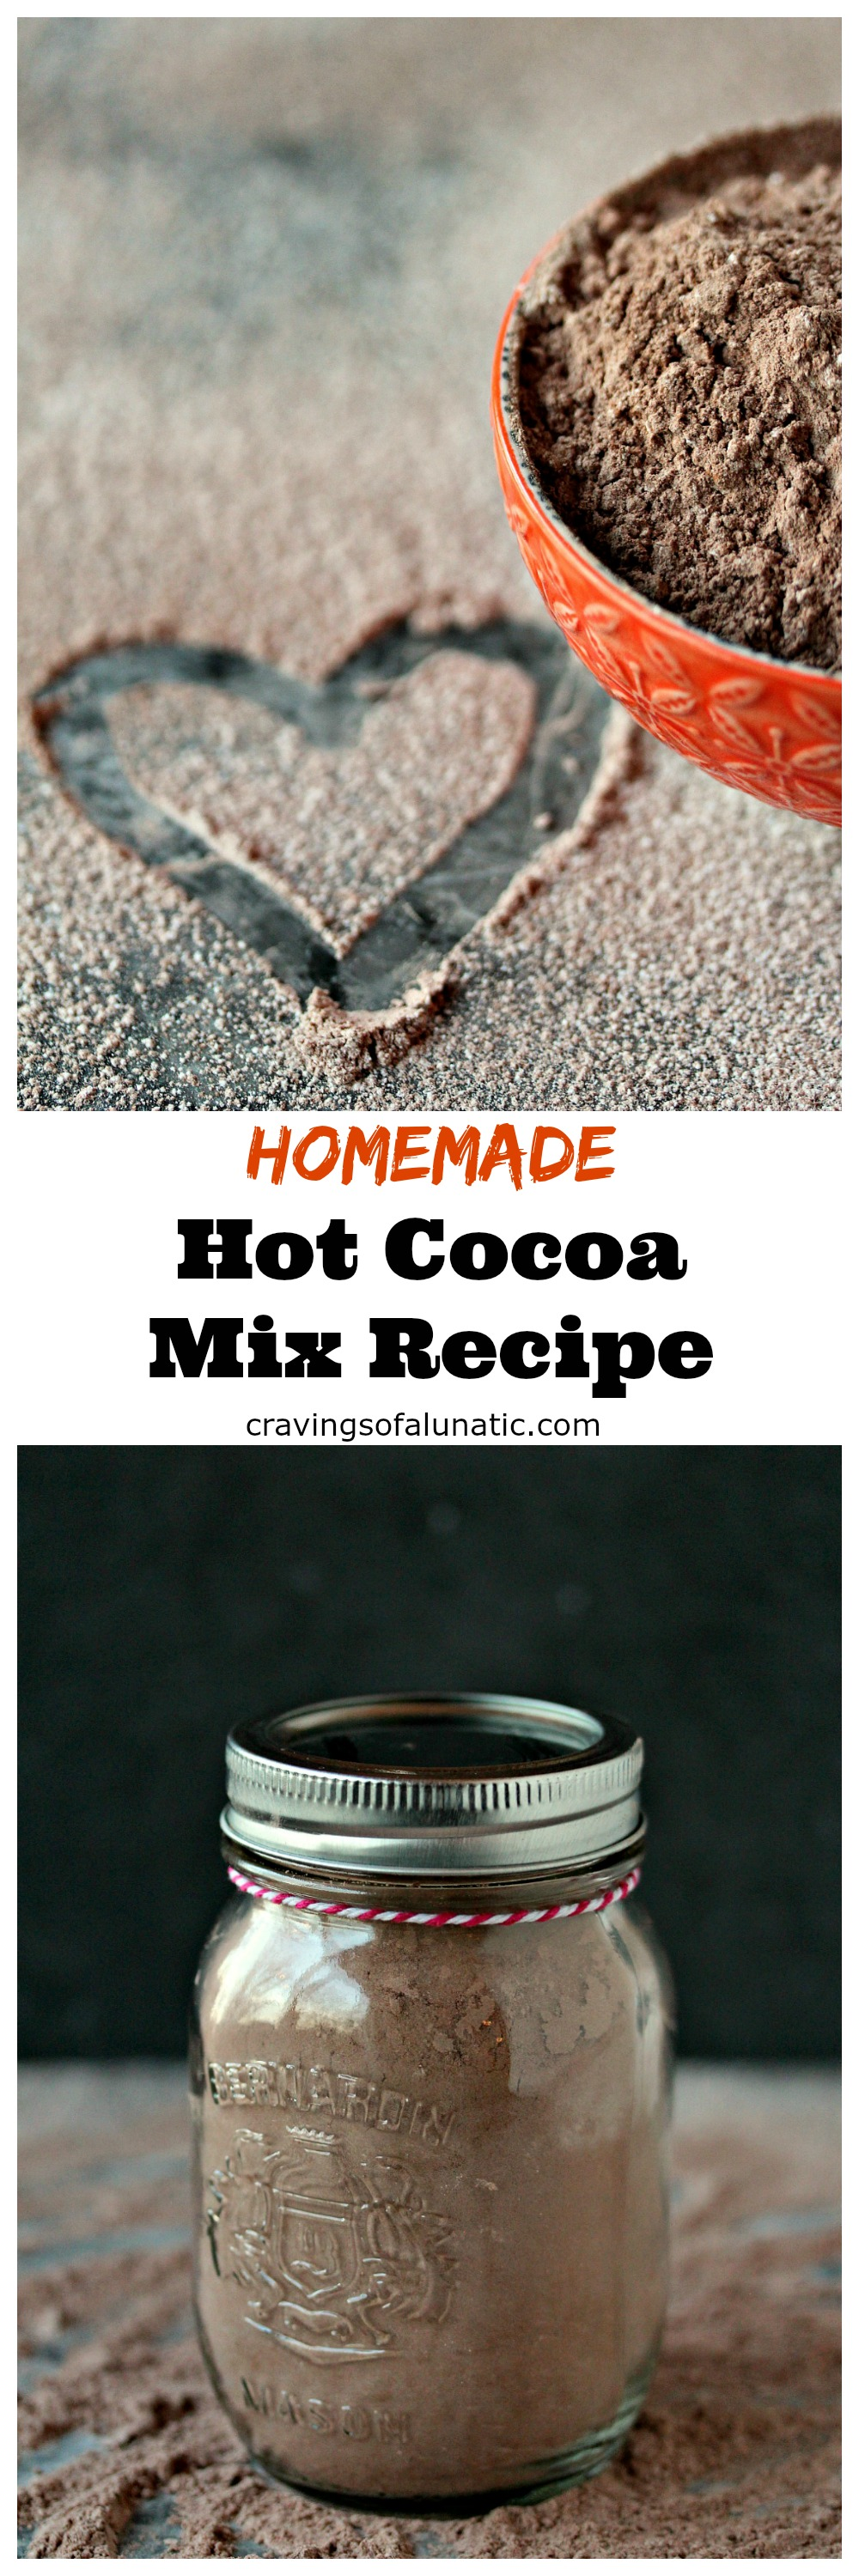 Homemade hot cocoa mix is the perfect easy recipe for anyone that loves chocolate. Make a big batch to give as gifts for the holidays!